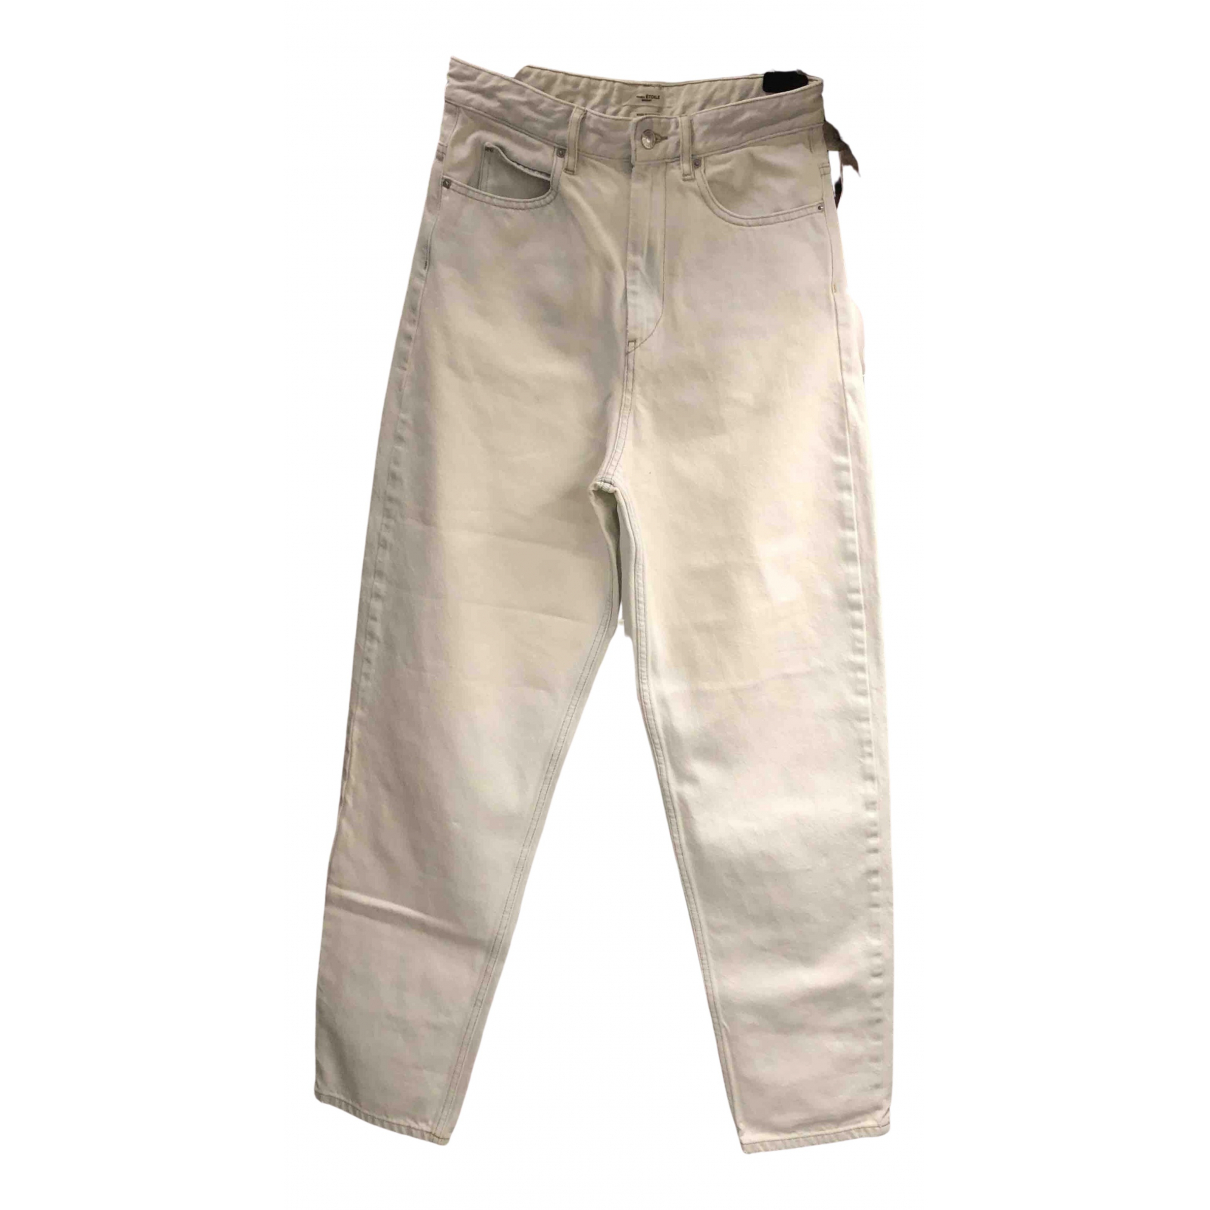 Isabel Marant \N Grey Cotton Jeans for Women 34 FR